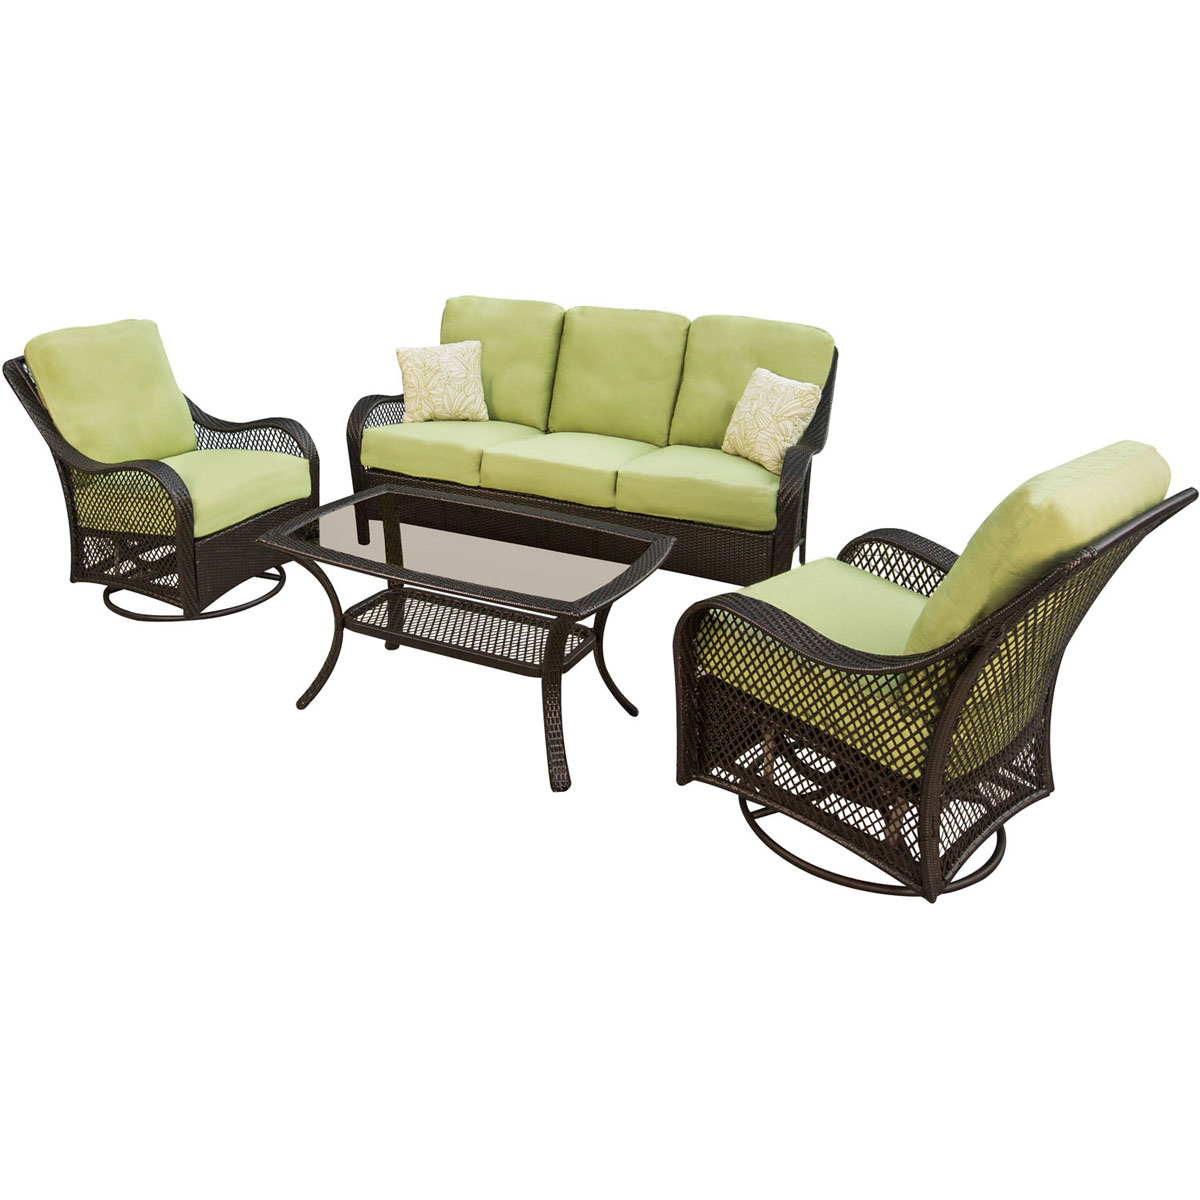 Swell Hanover Orleans 4 Piece Wicker Loveseat And Chair Set With 2 Alphanode Cool Chair Designs And Ideas Alphanodeonline